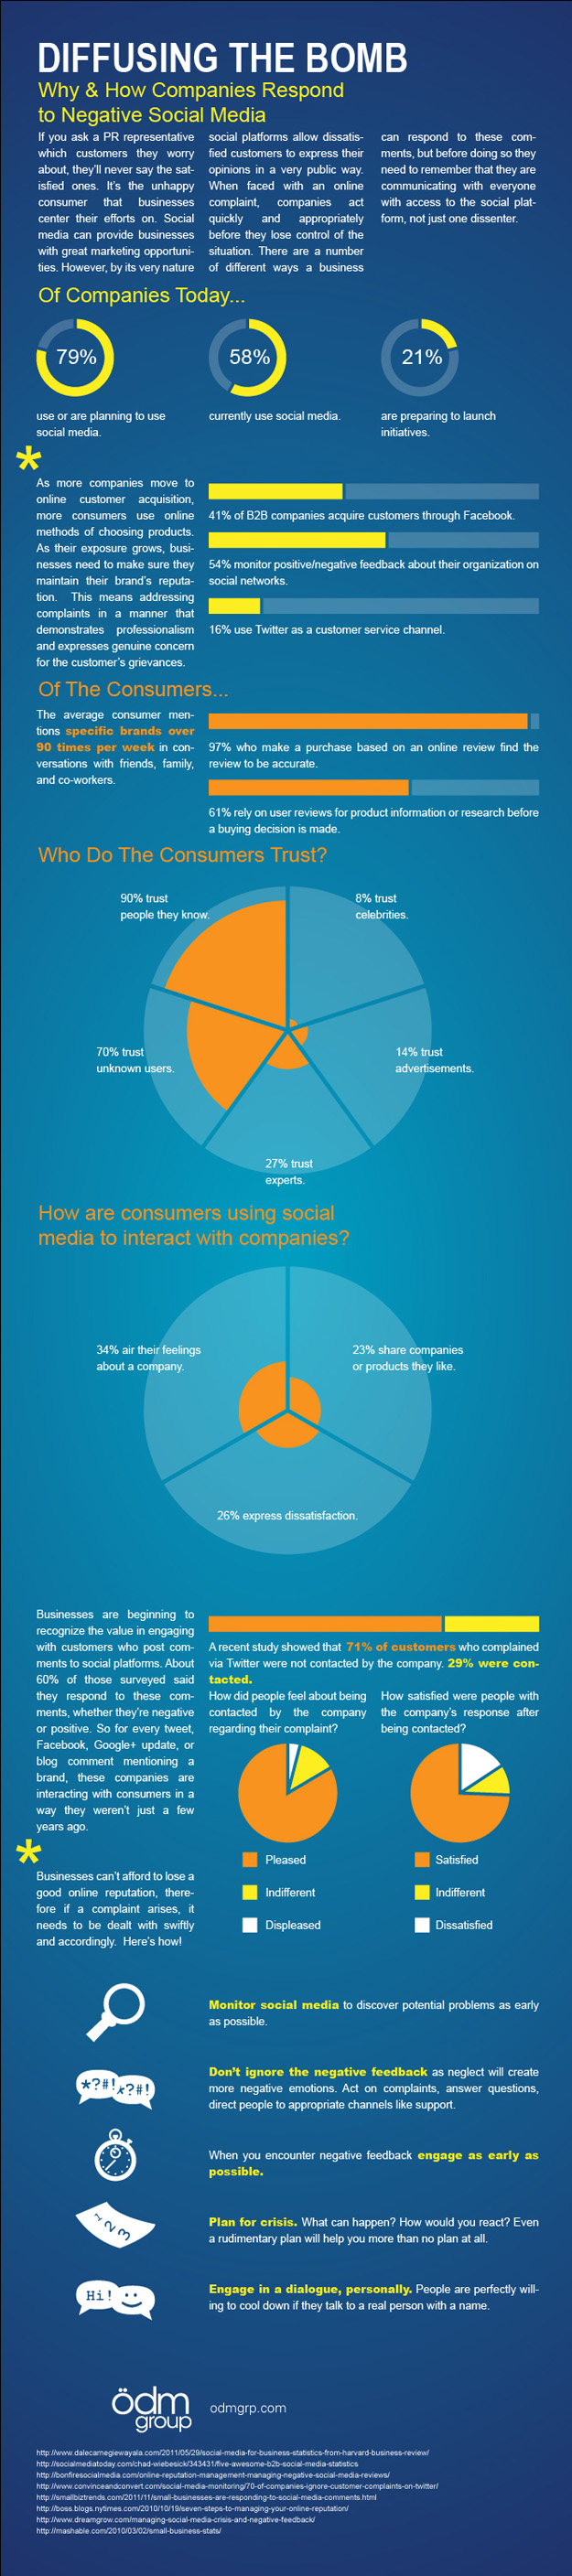 social_media_comments_infographic Social Media Consumers want Friendliness from Pages